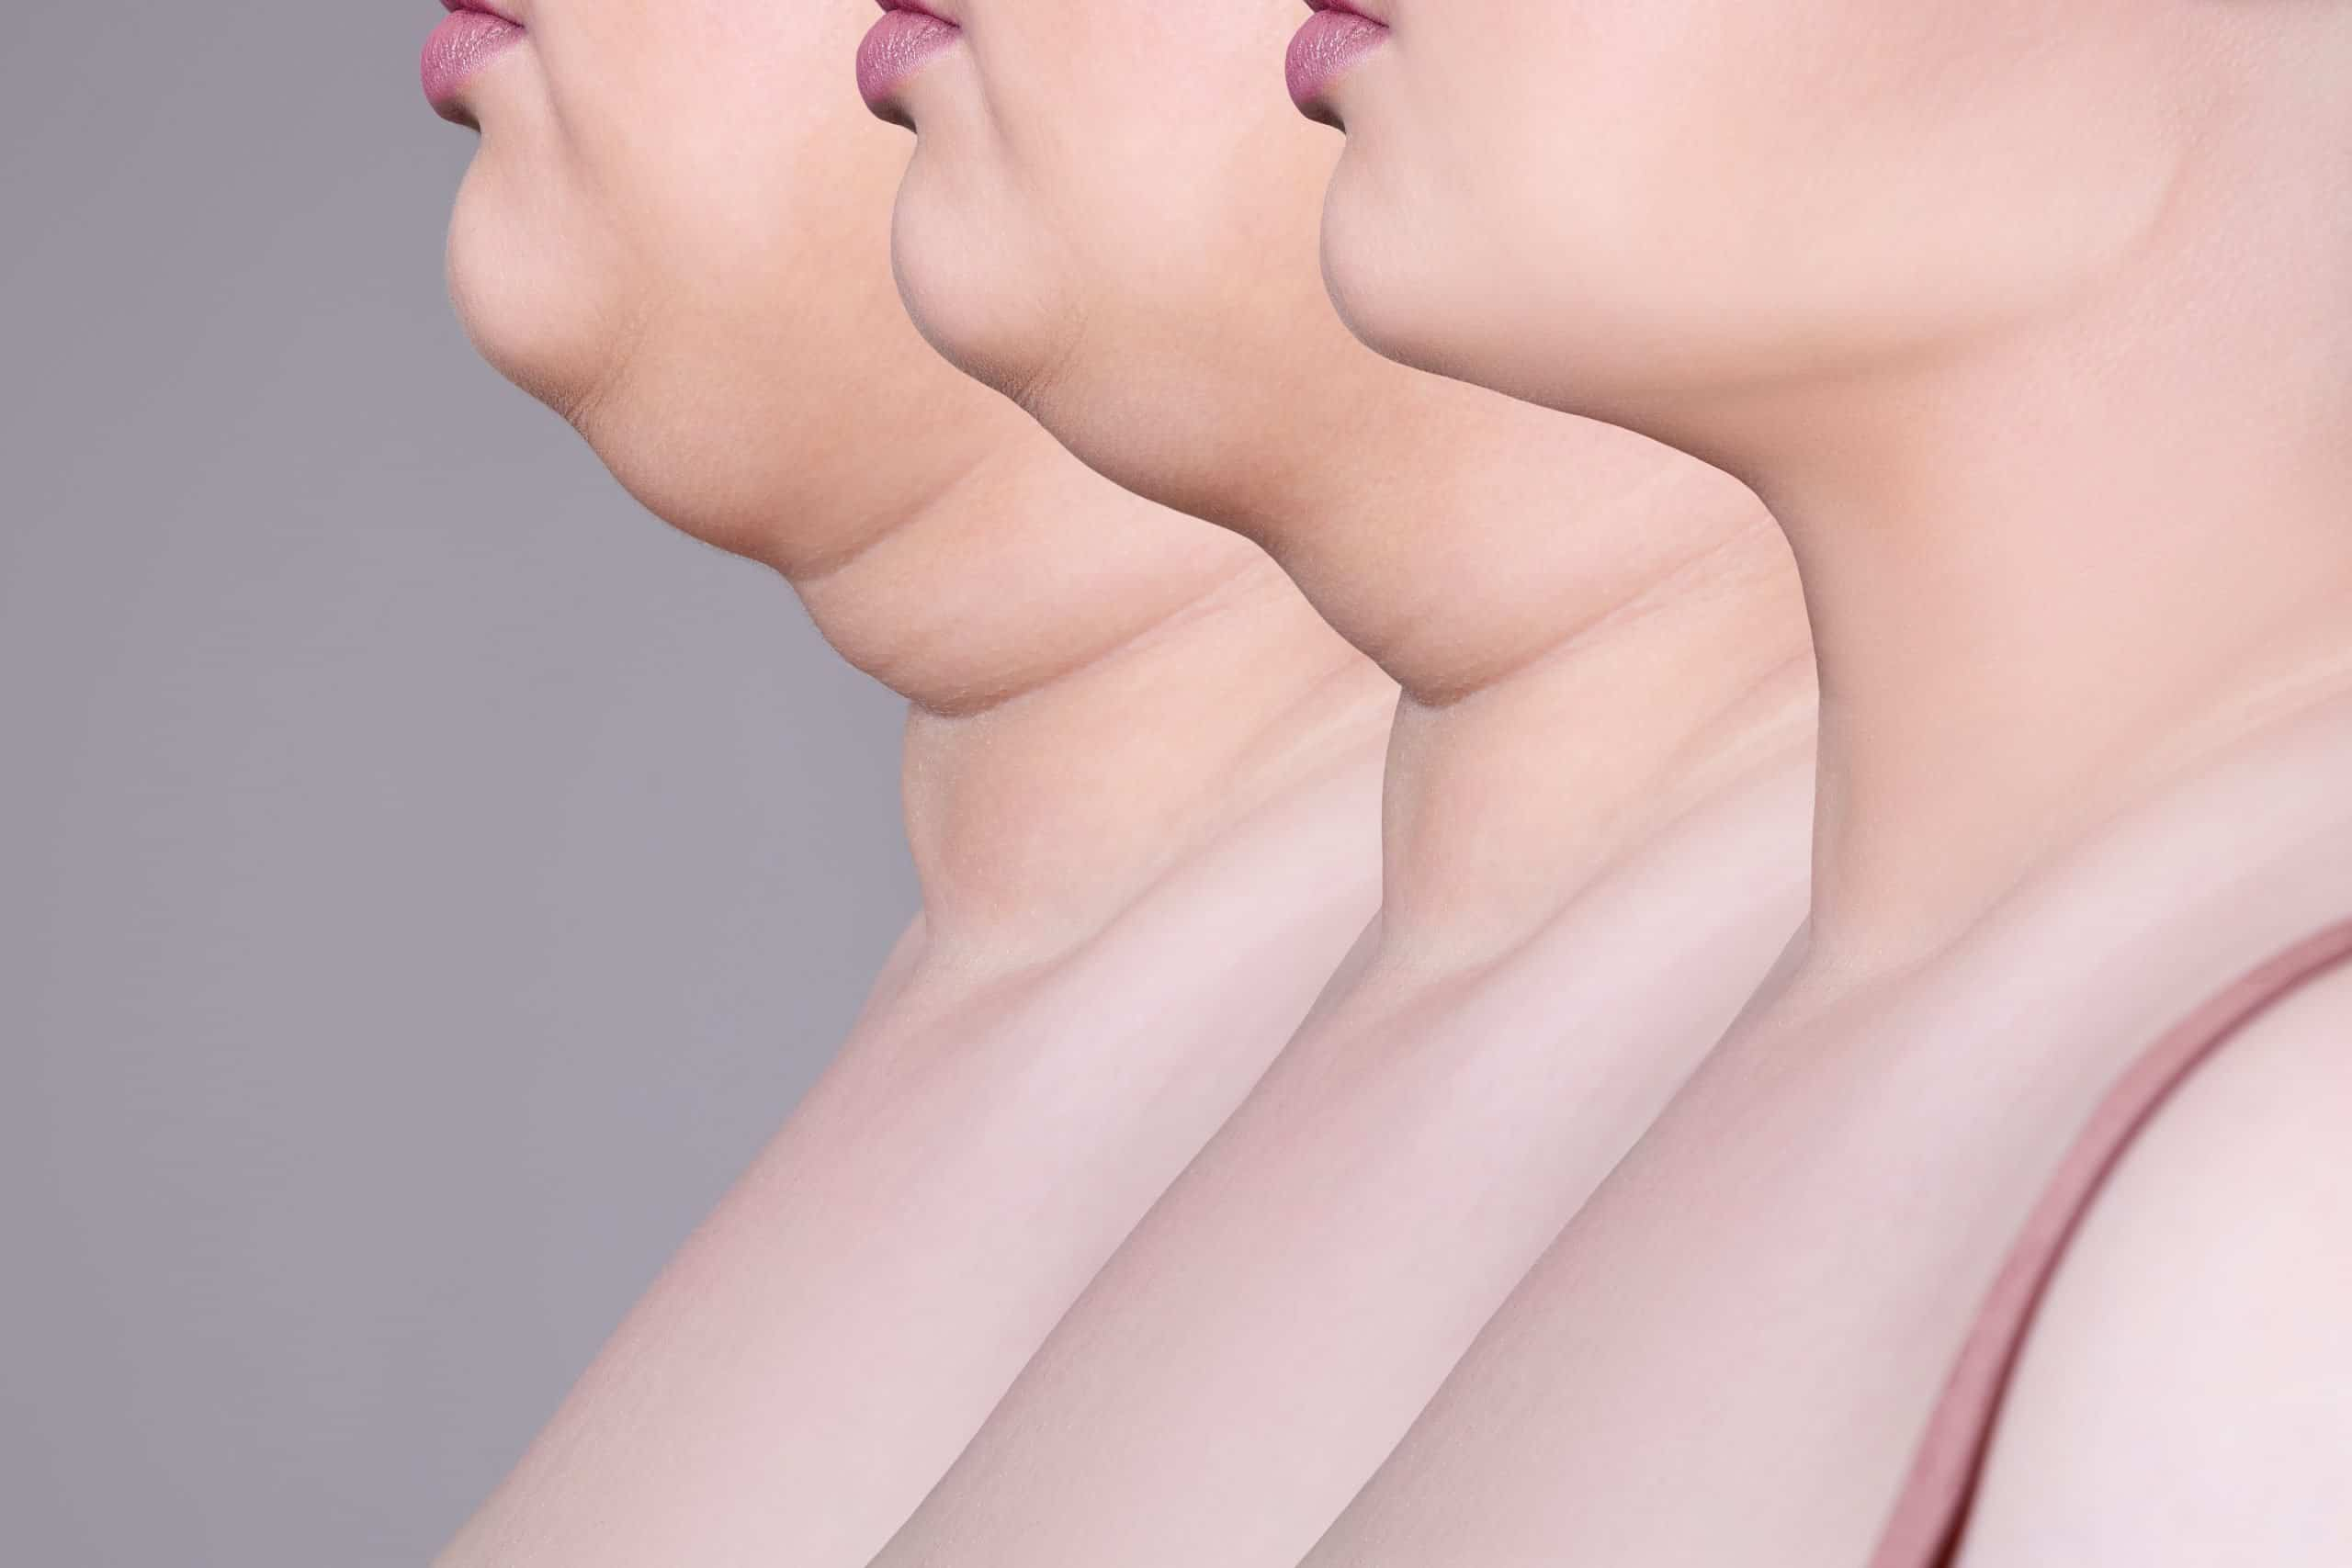 Kybella for double chin - submental fat